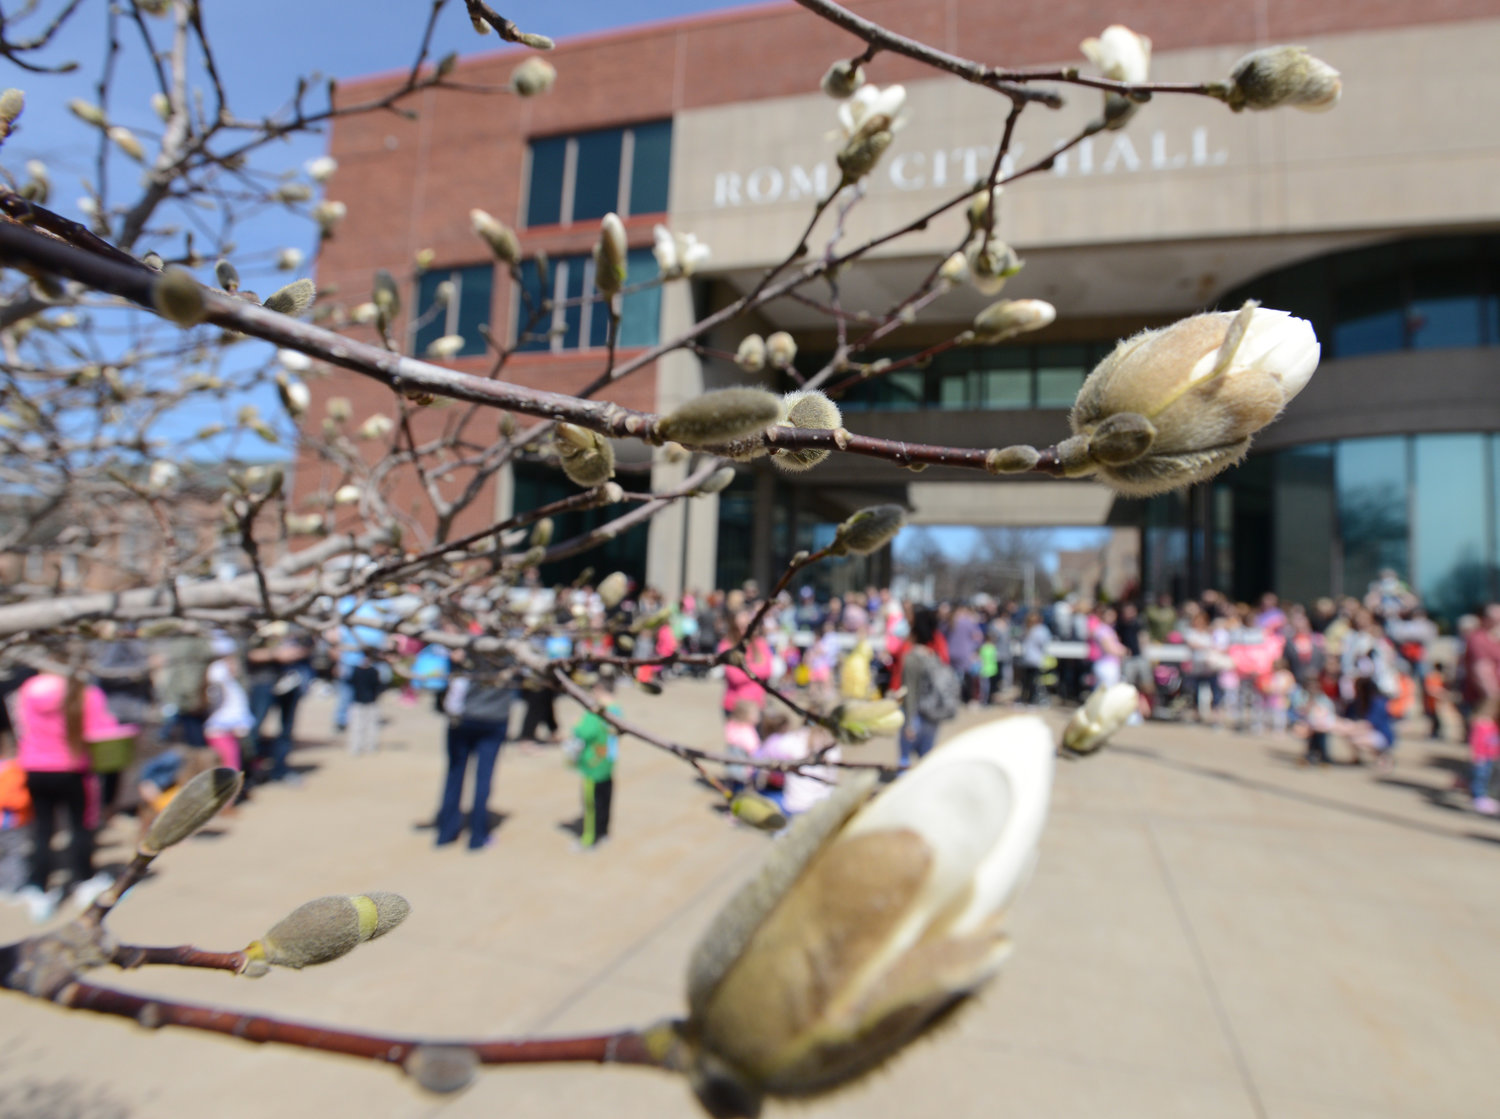 SPRINGTIME — Trees were beginning to bud on Griffo Green Wednesday. In the background, participants in the City Hall Easter Egg Hunt waited to begin searching for eggs.